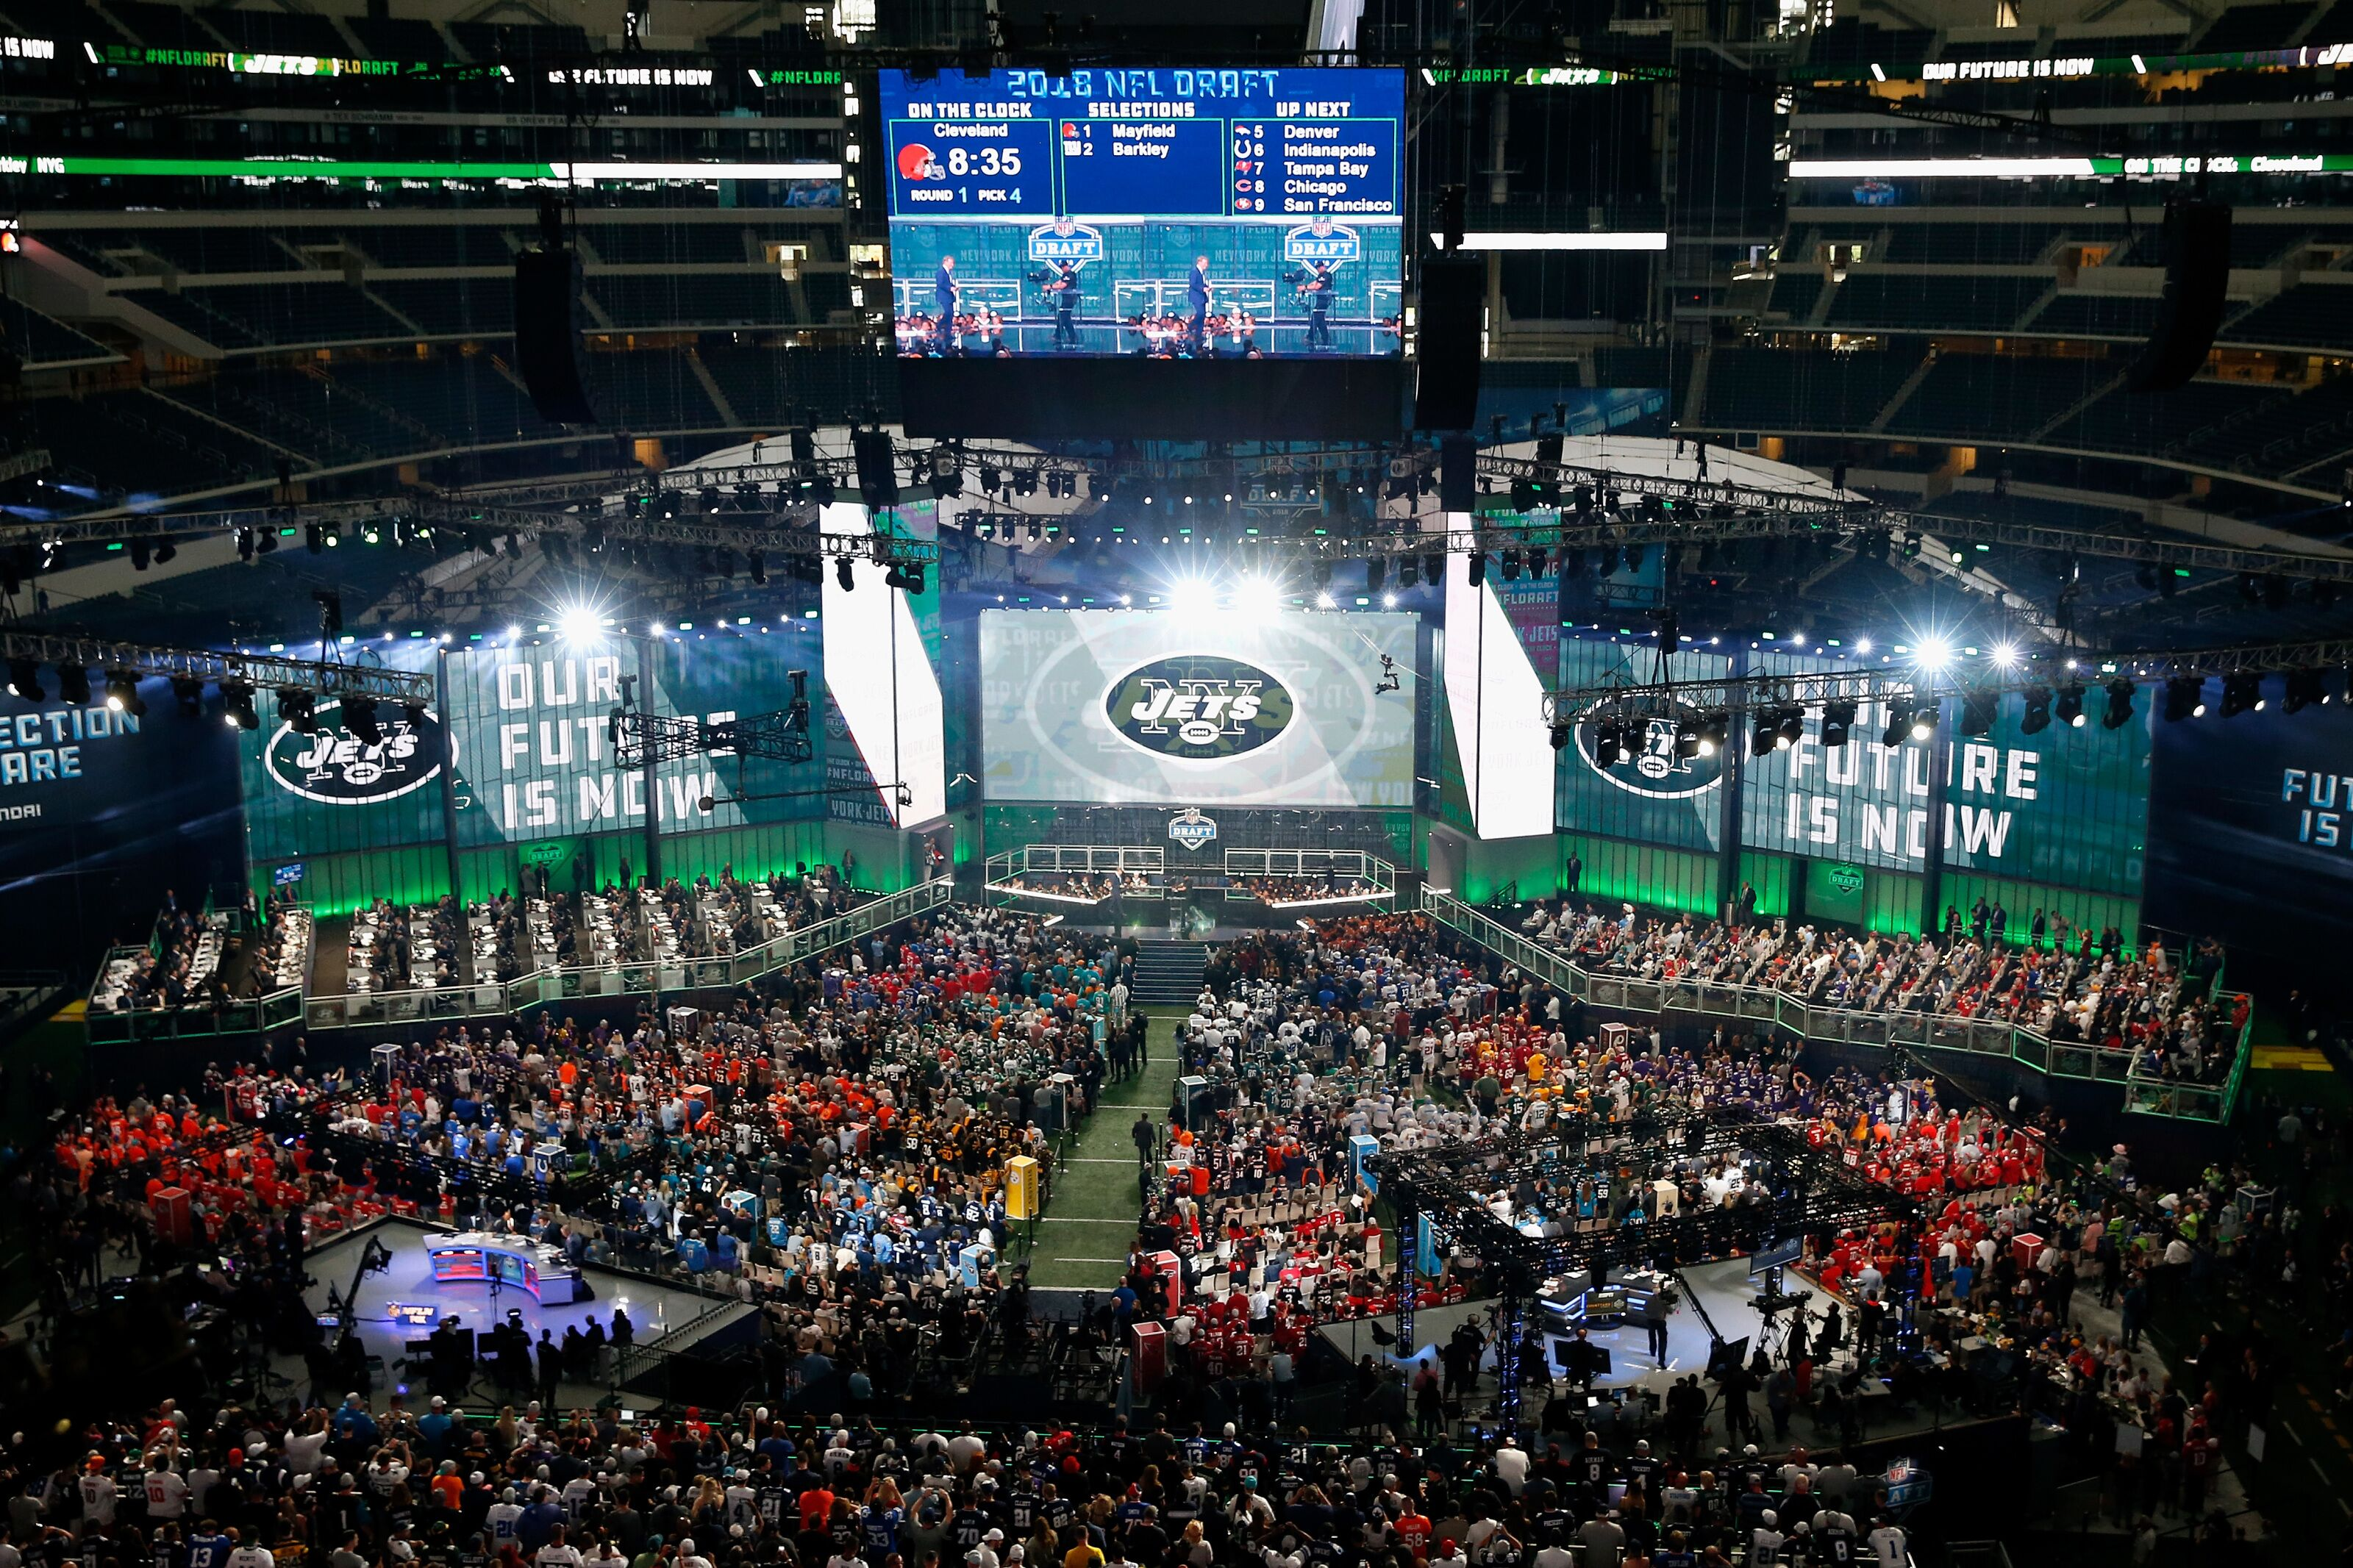 New York Jets intention to trade down in 2019 NFL Draft the proper call